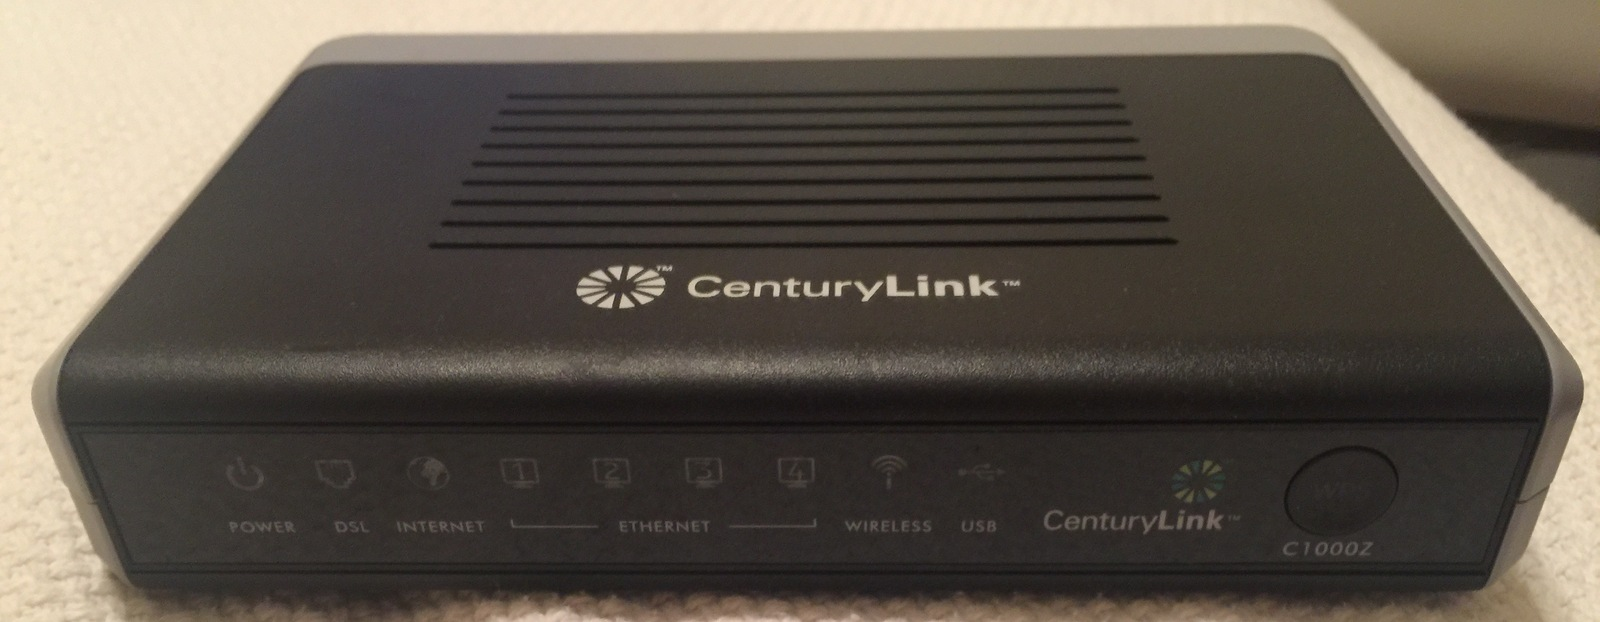 Zyxel C1000Z 802 11n VDSL2 Wireless Gateway and 10 similar items